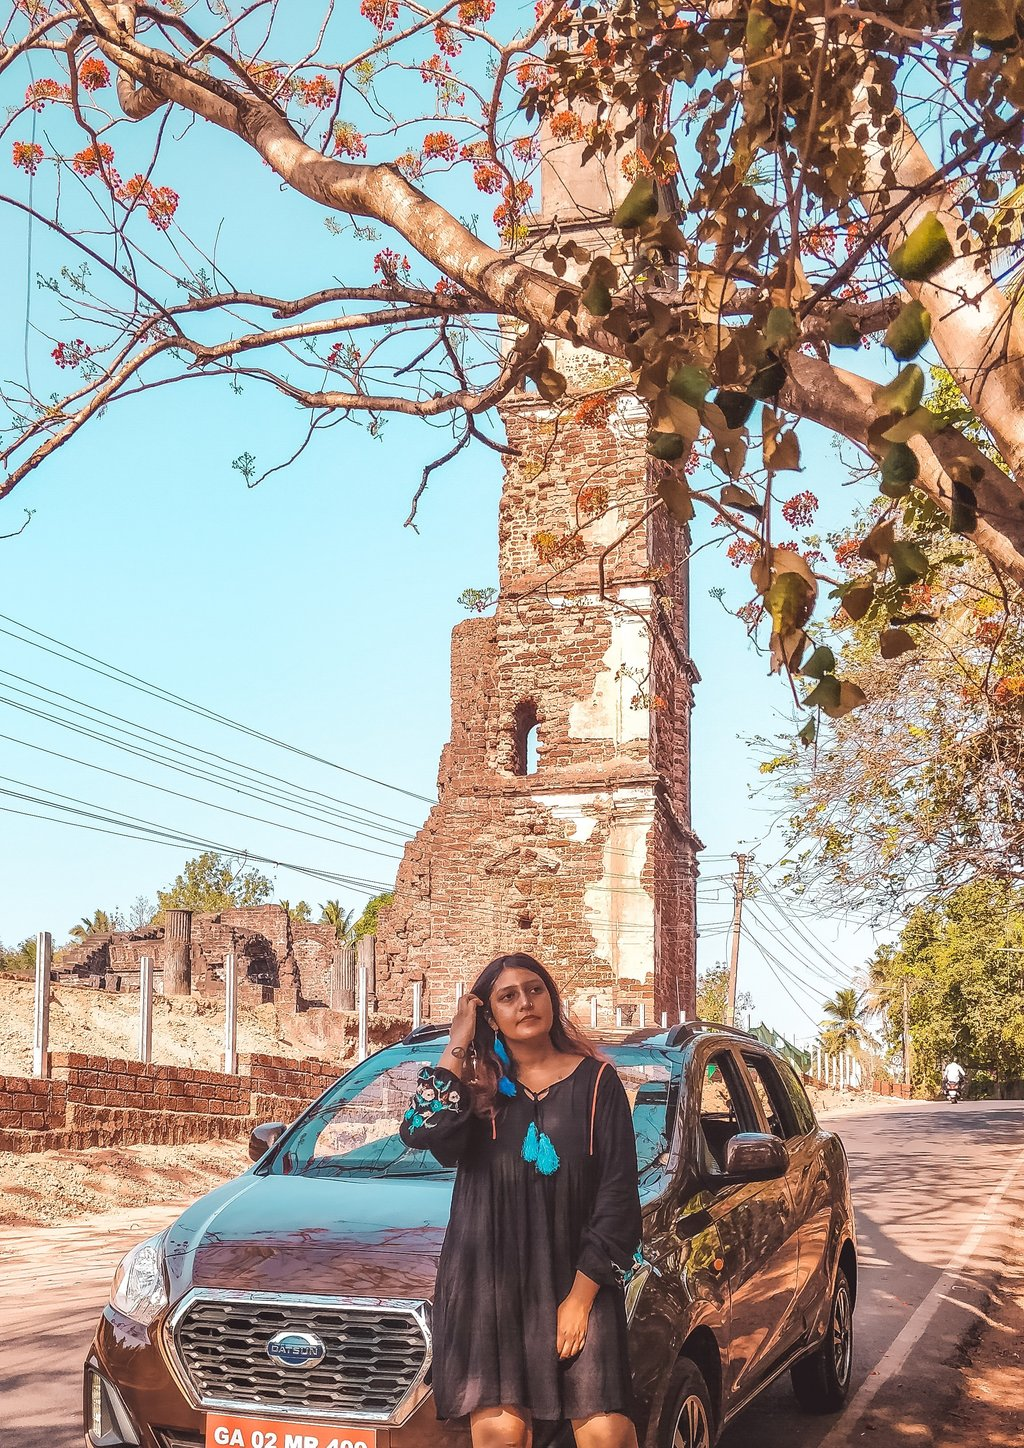 St Augustine Tower in offbeat Goa